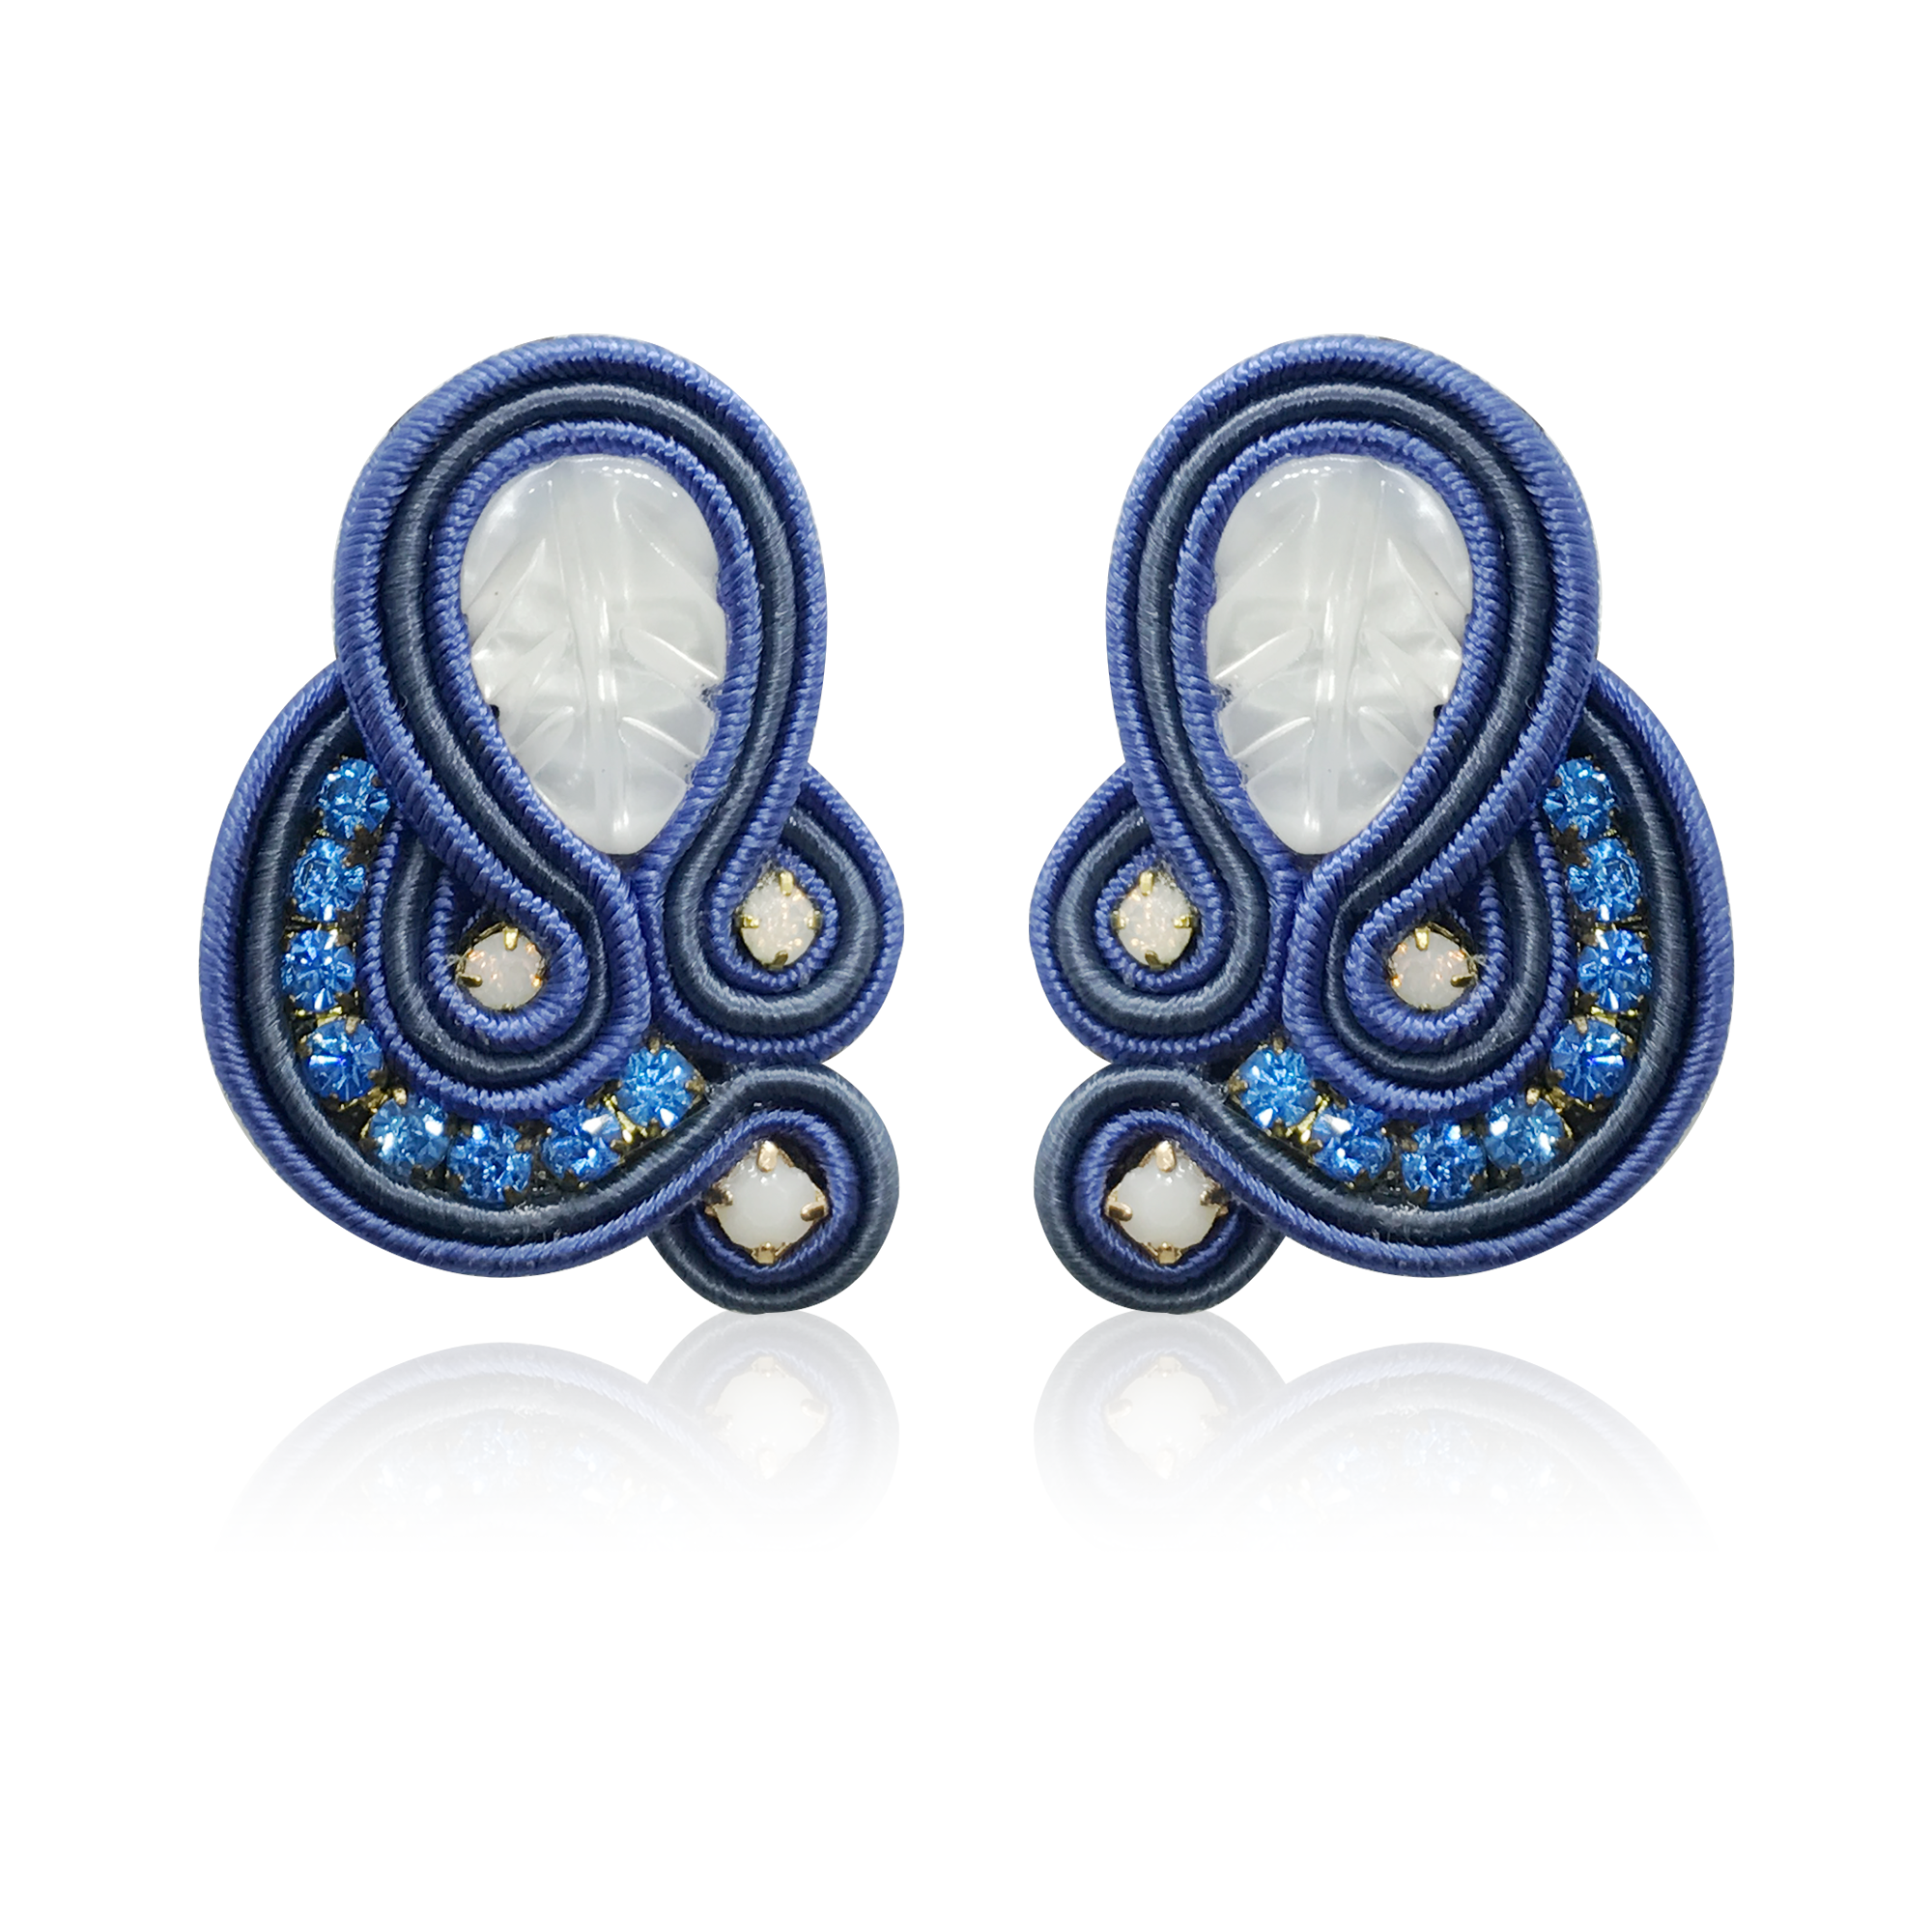 Donna Navy Blue Earrings